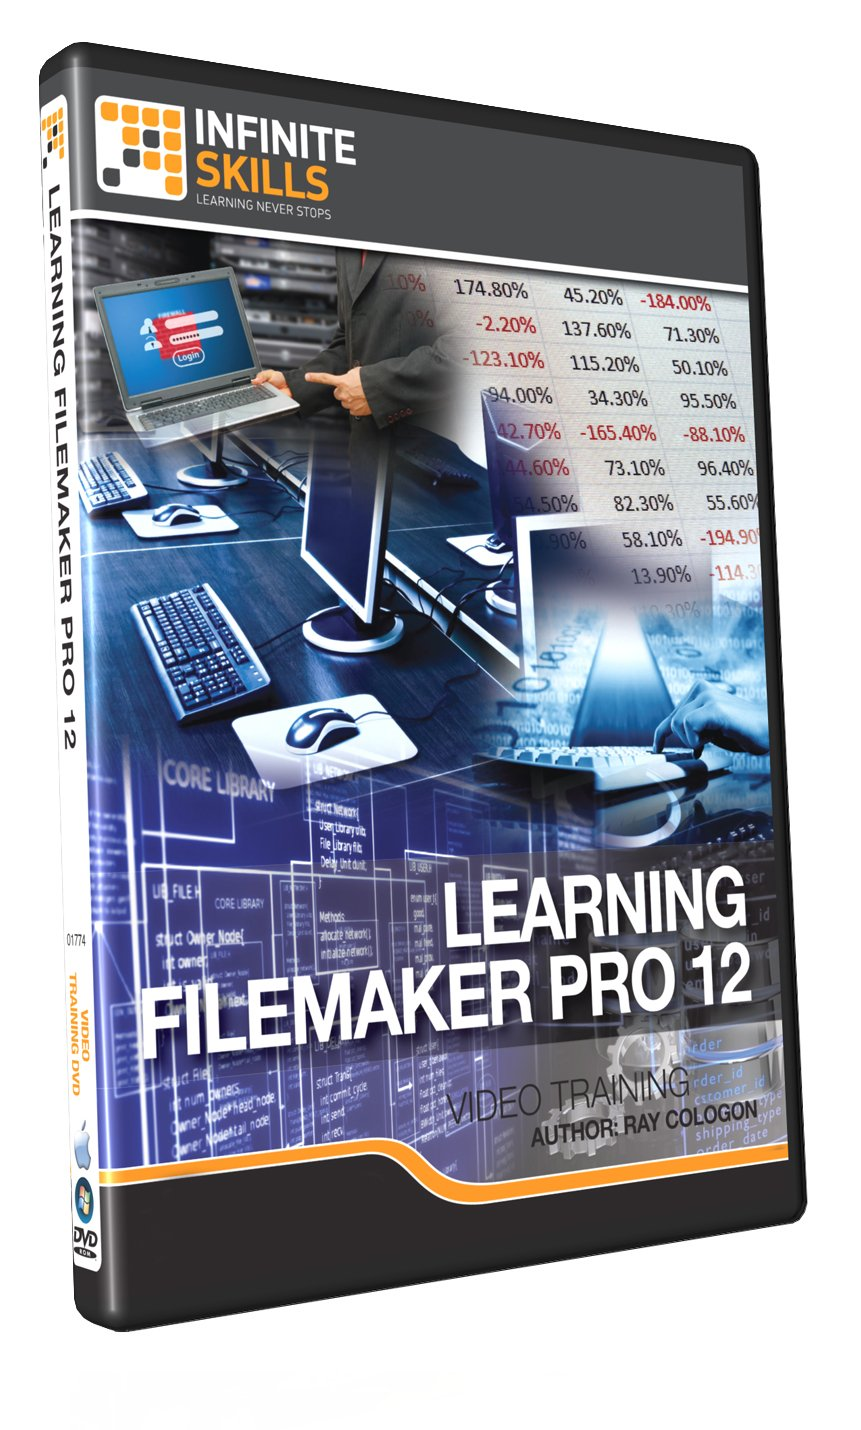 The Best Deals On Infinite Skills - Learning FileMaker Pro 12